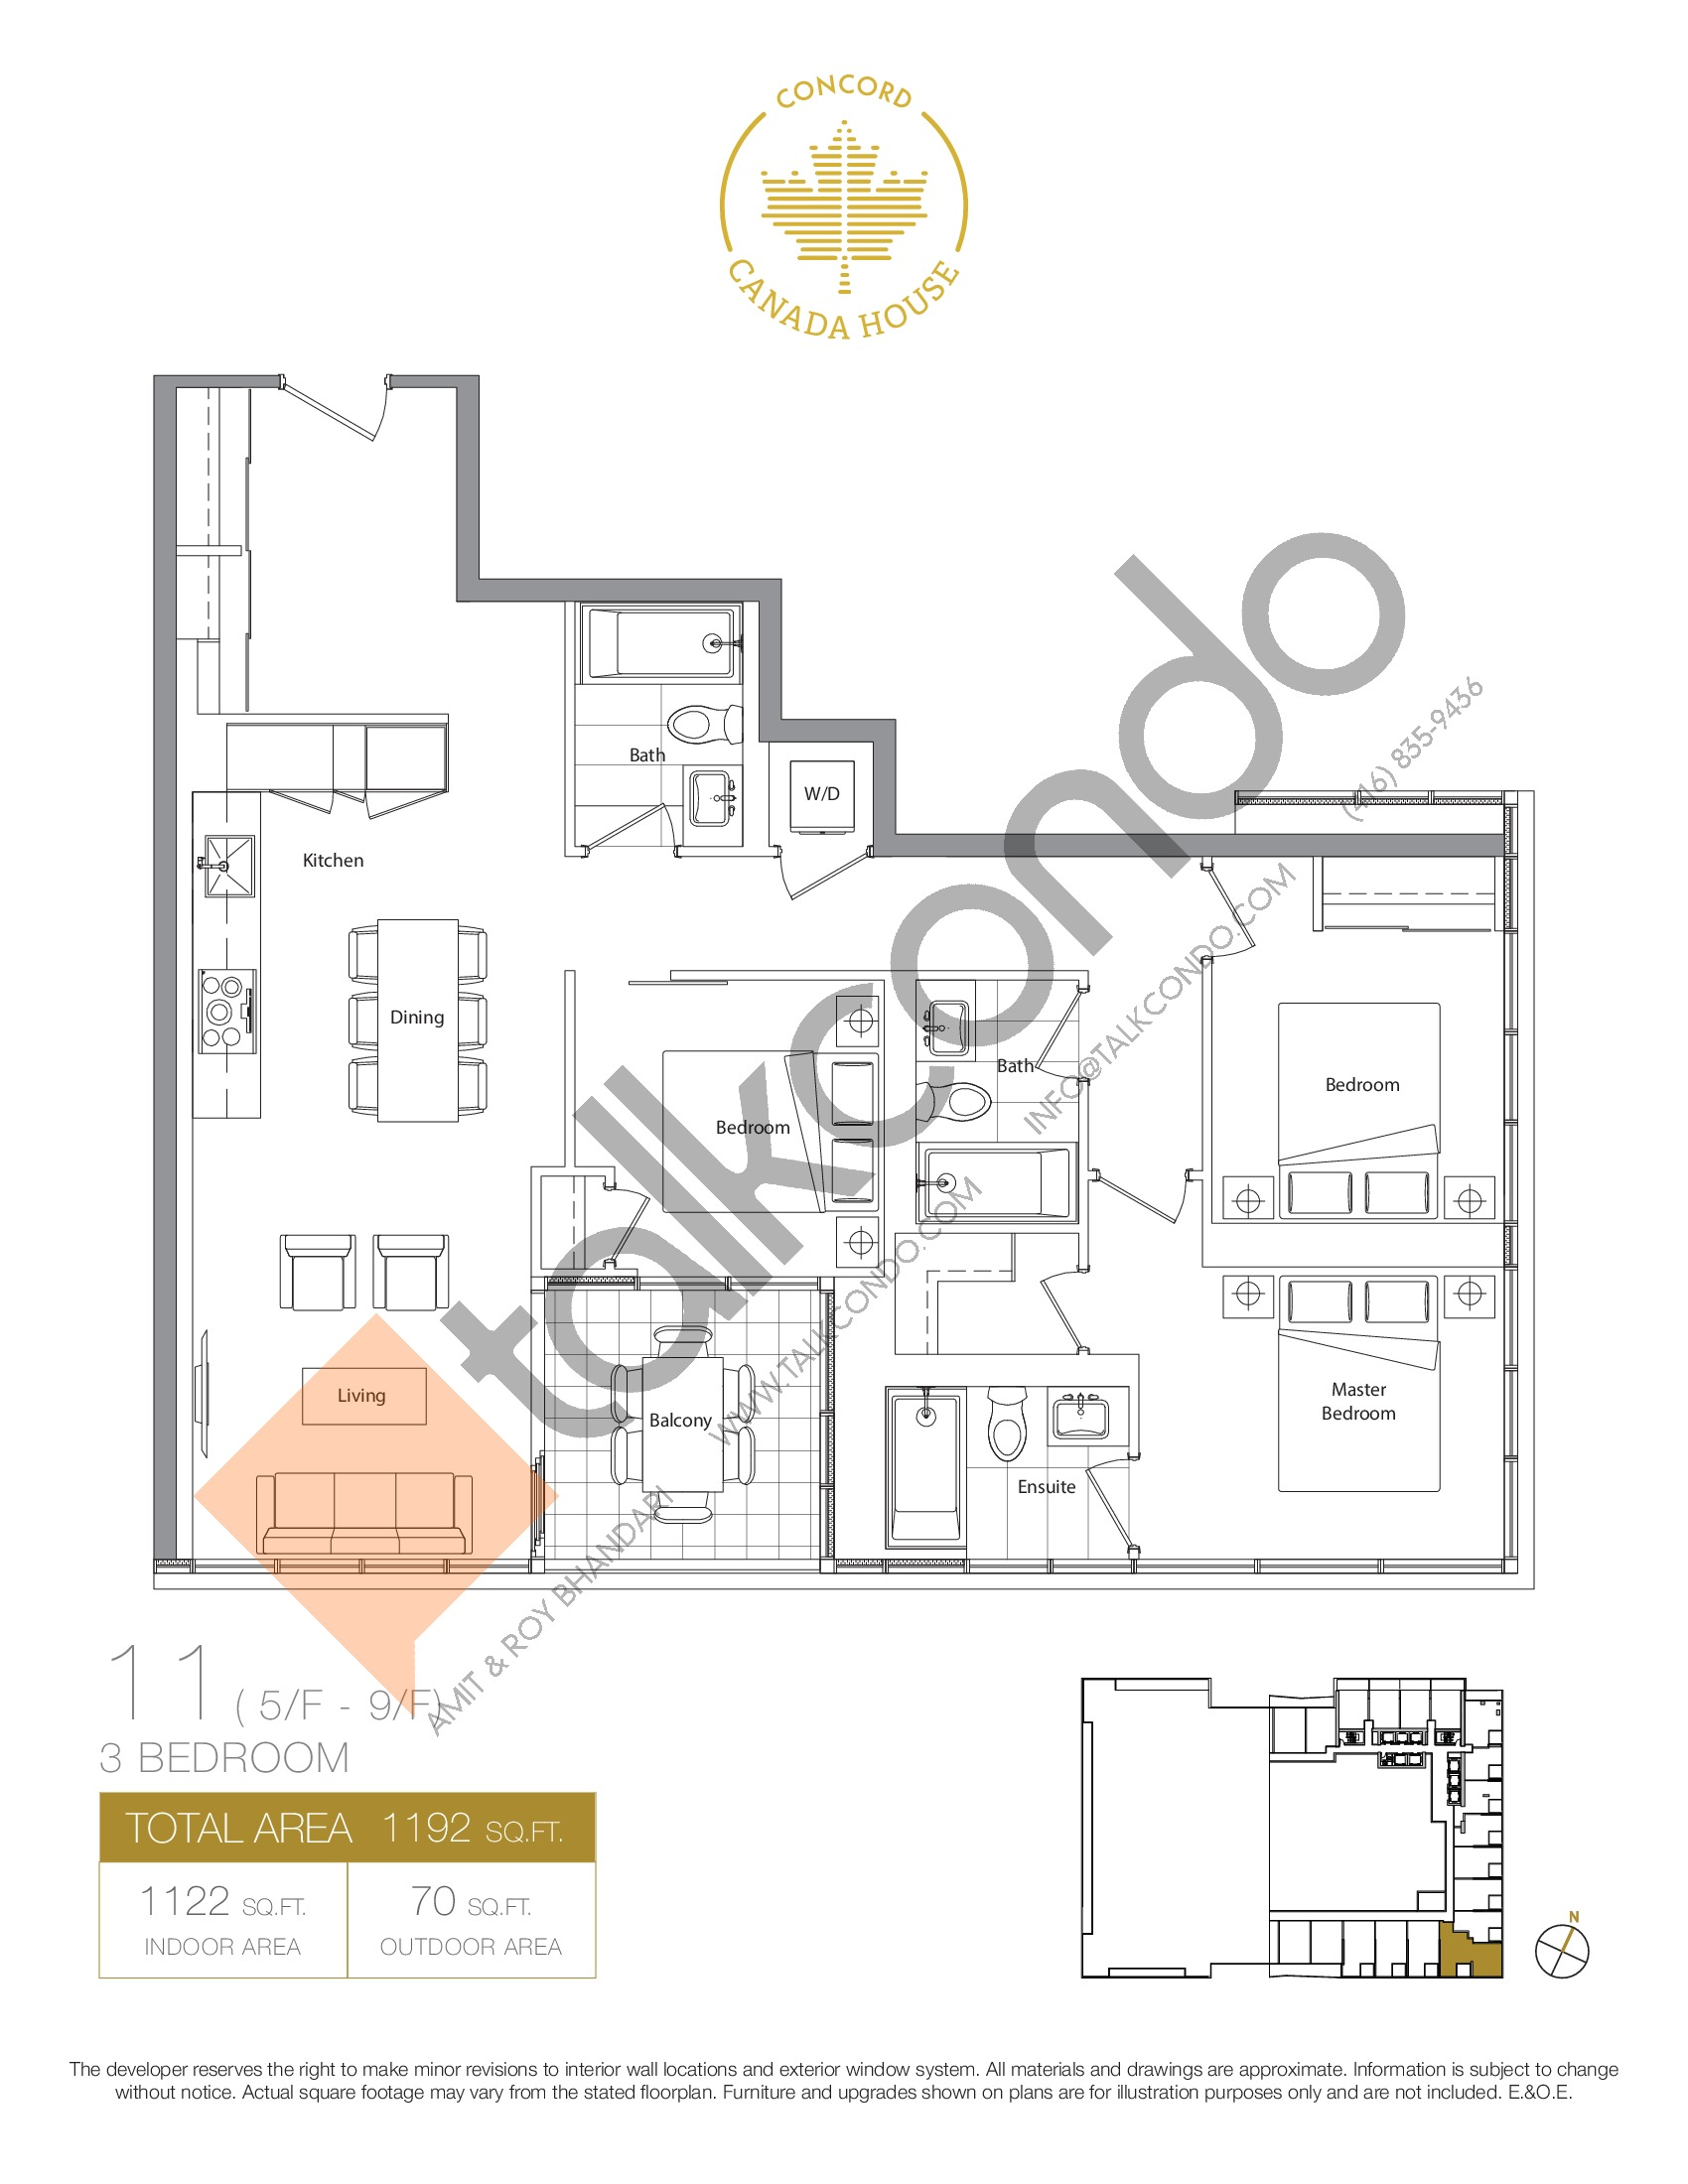 11 - East Tower Floor Plan at Concord Canada House Condos - 1122 sq.ft